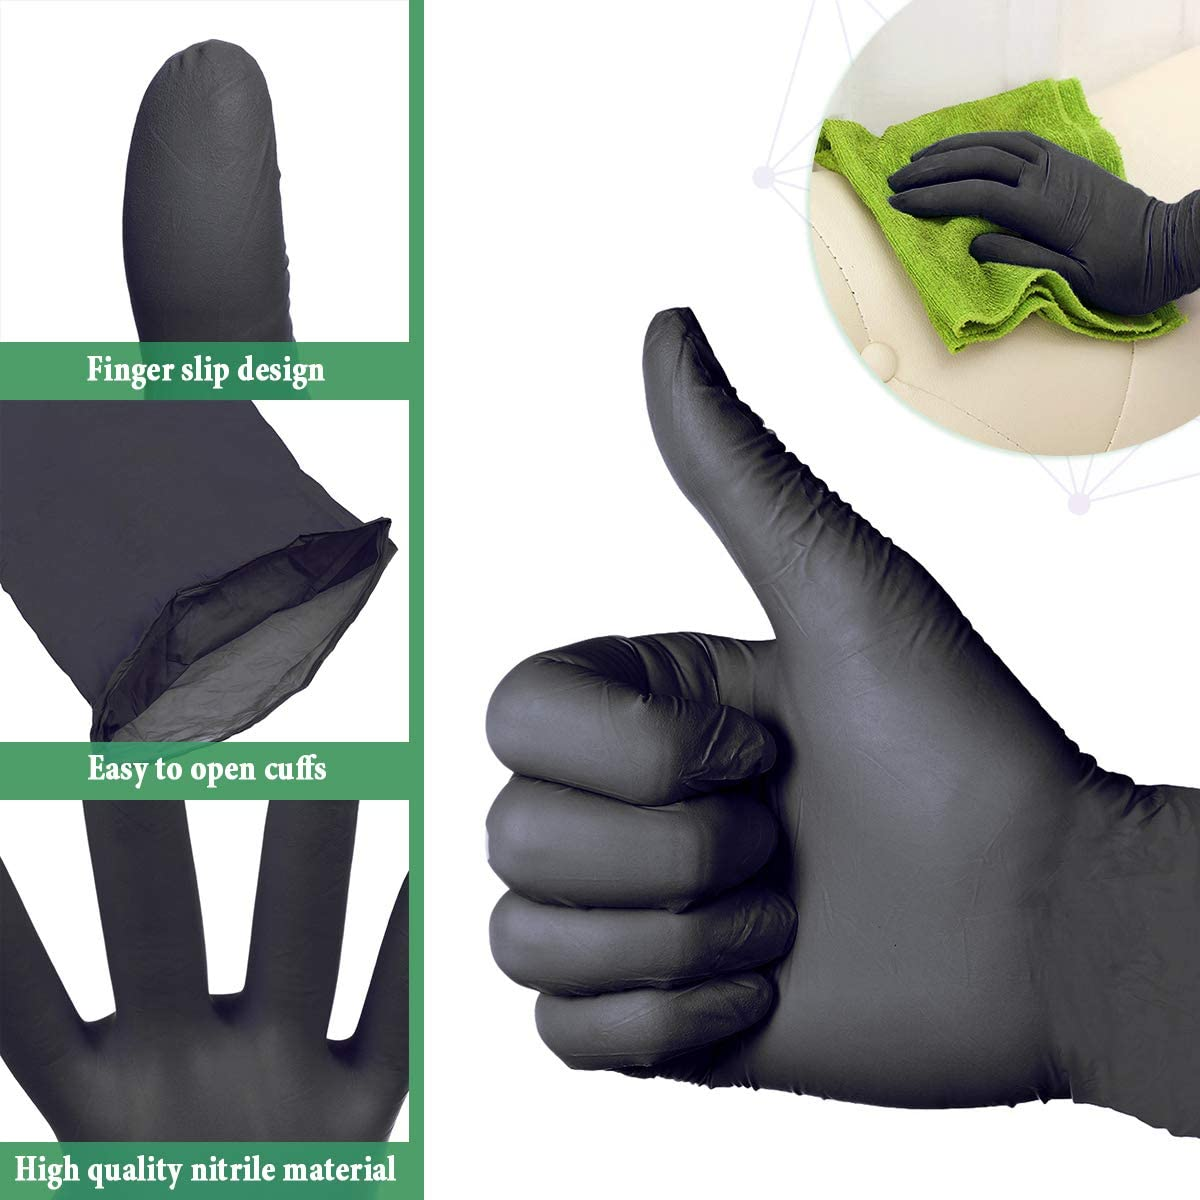 S,M,L Latex Free,Cleaning Glove for Family Use,Arrive in 7-10 Days Soft Industrial Gloves 50 Pairs Gloves Ship from USA S, Black